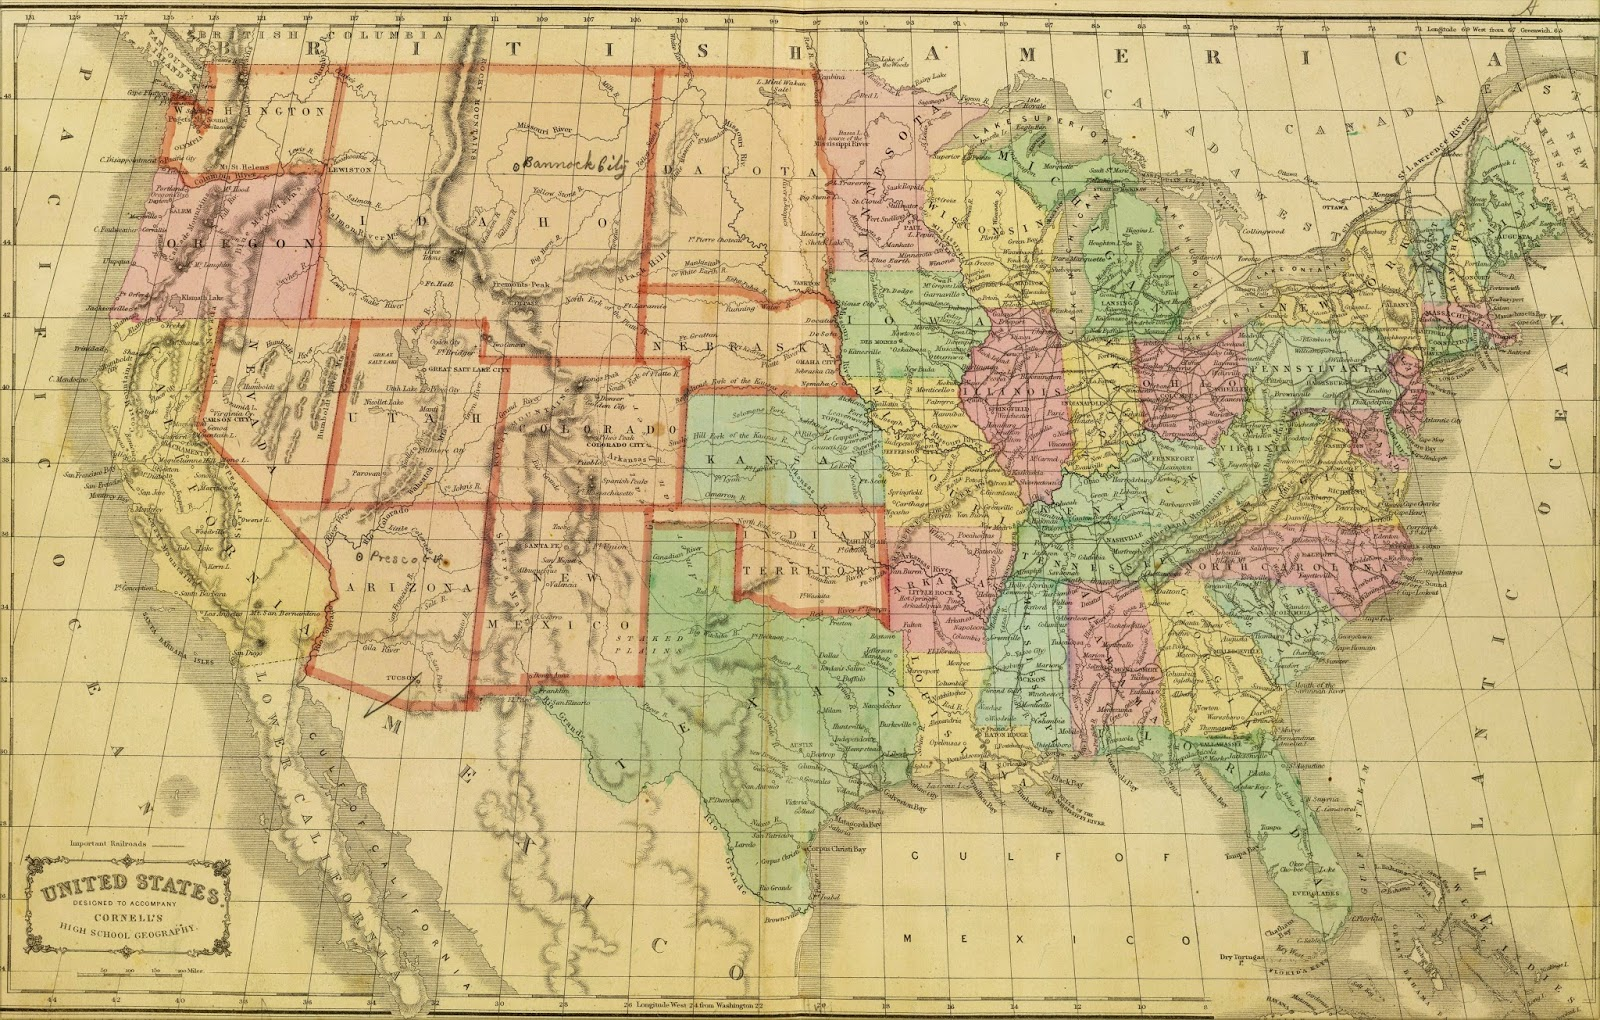 Map of the United States by Cornell (1864)